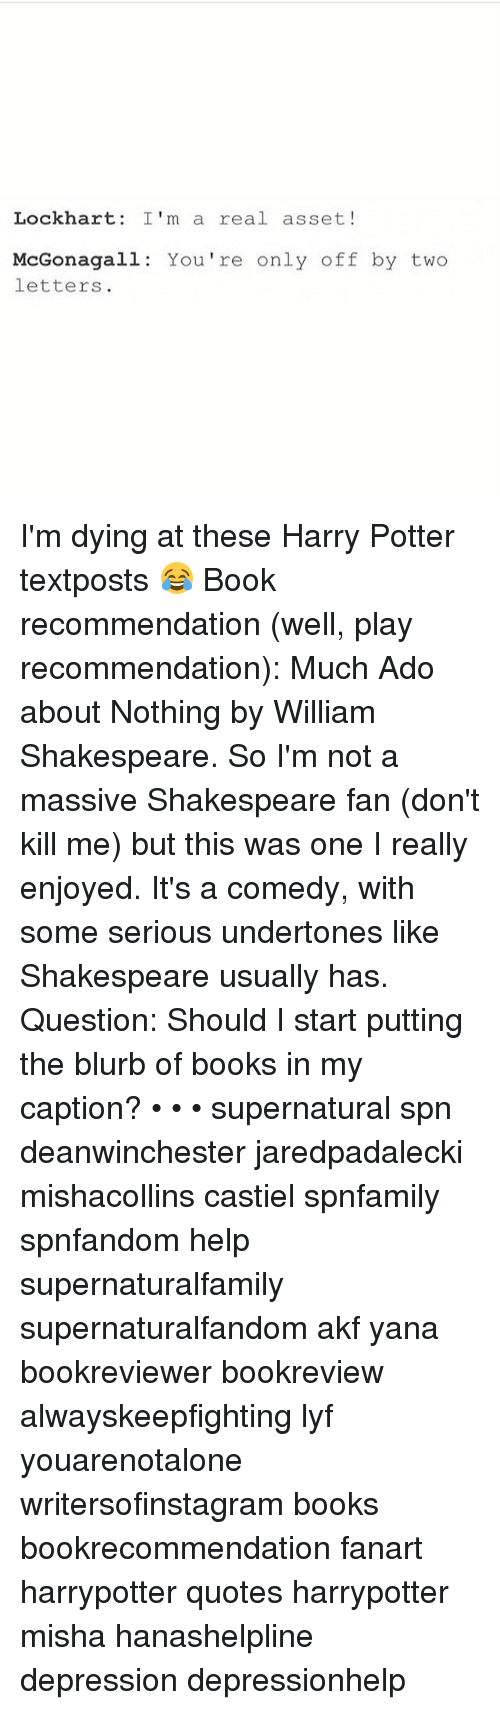 disillusionment depression and despair in hamlet by william shakespeare These are the burning emotions churning in young hamlet's soul as he attempts   disillusionment, depression, and despair in hamlet by william shakespeare.